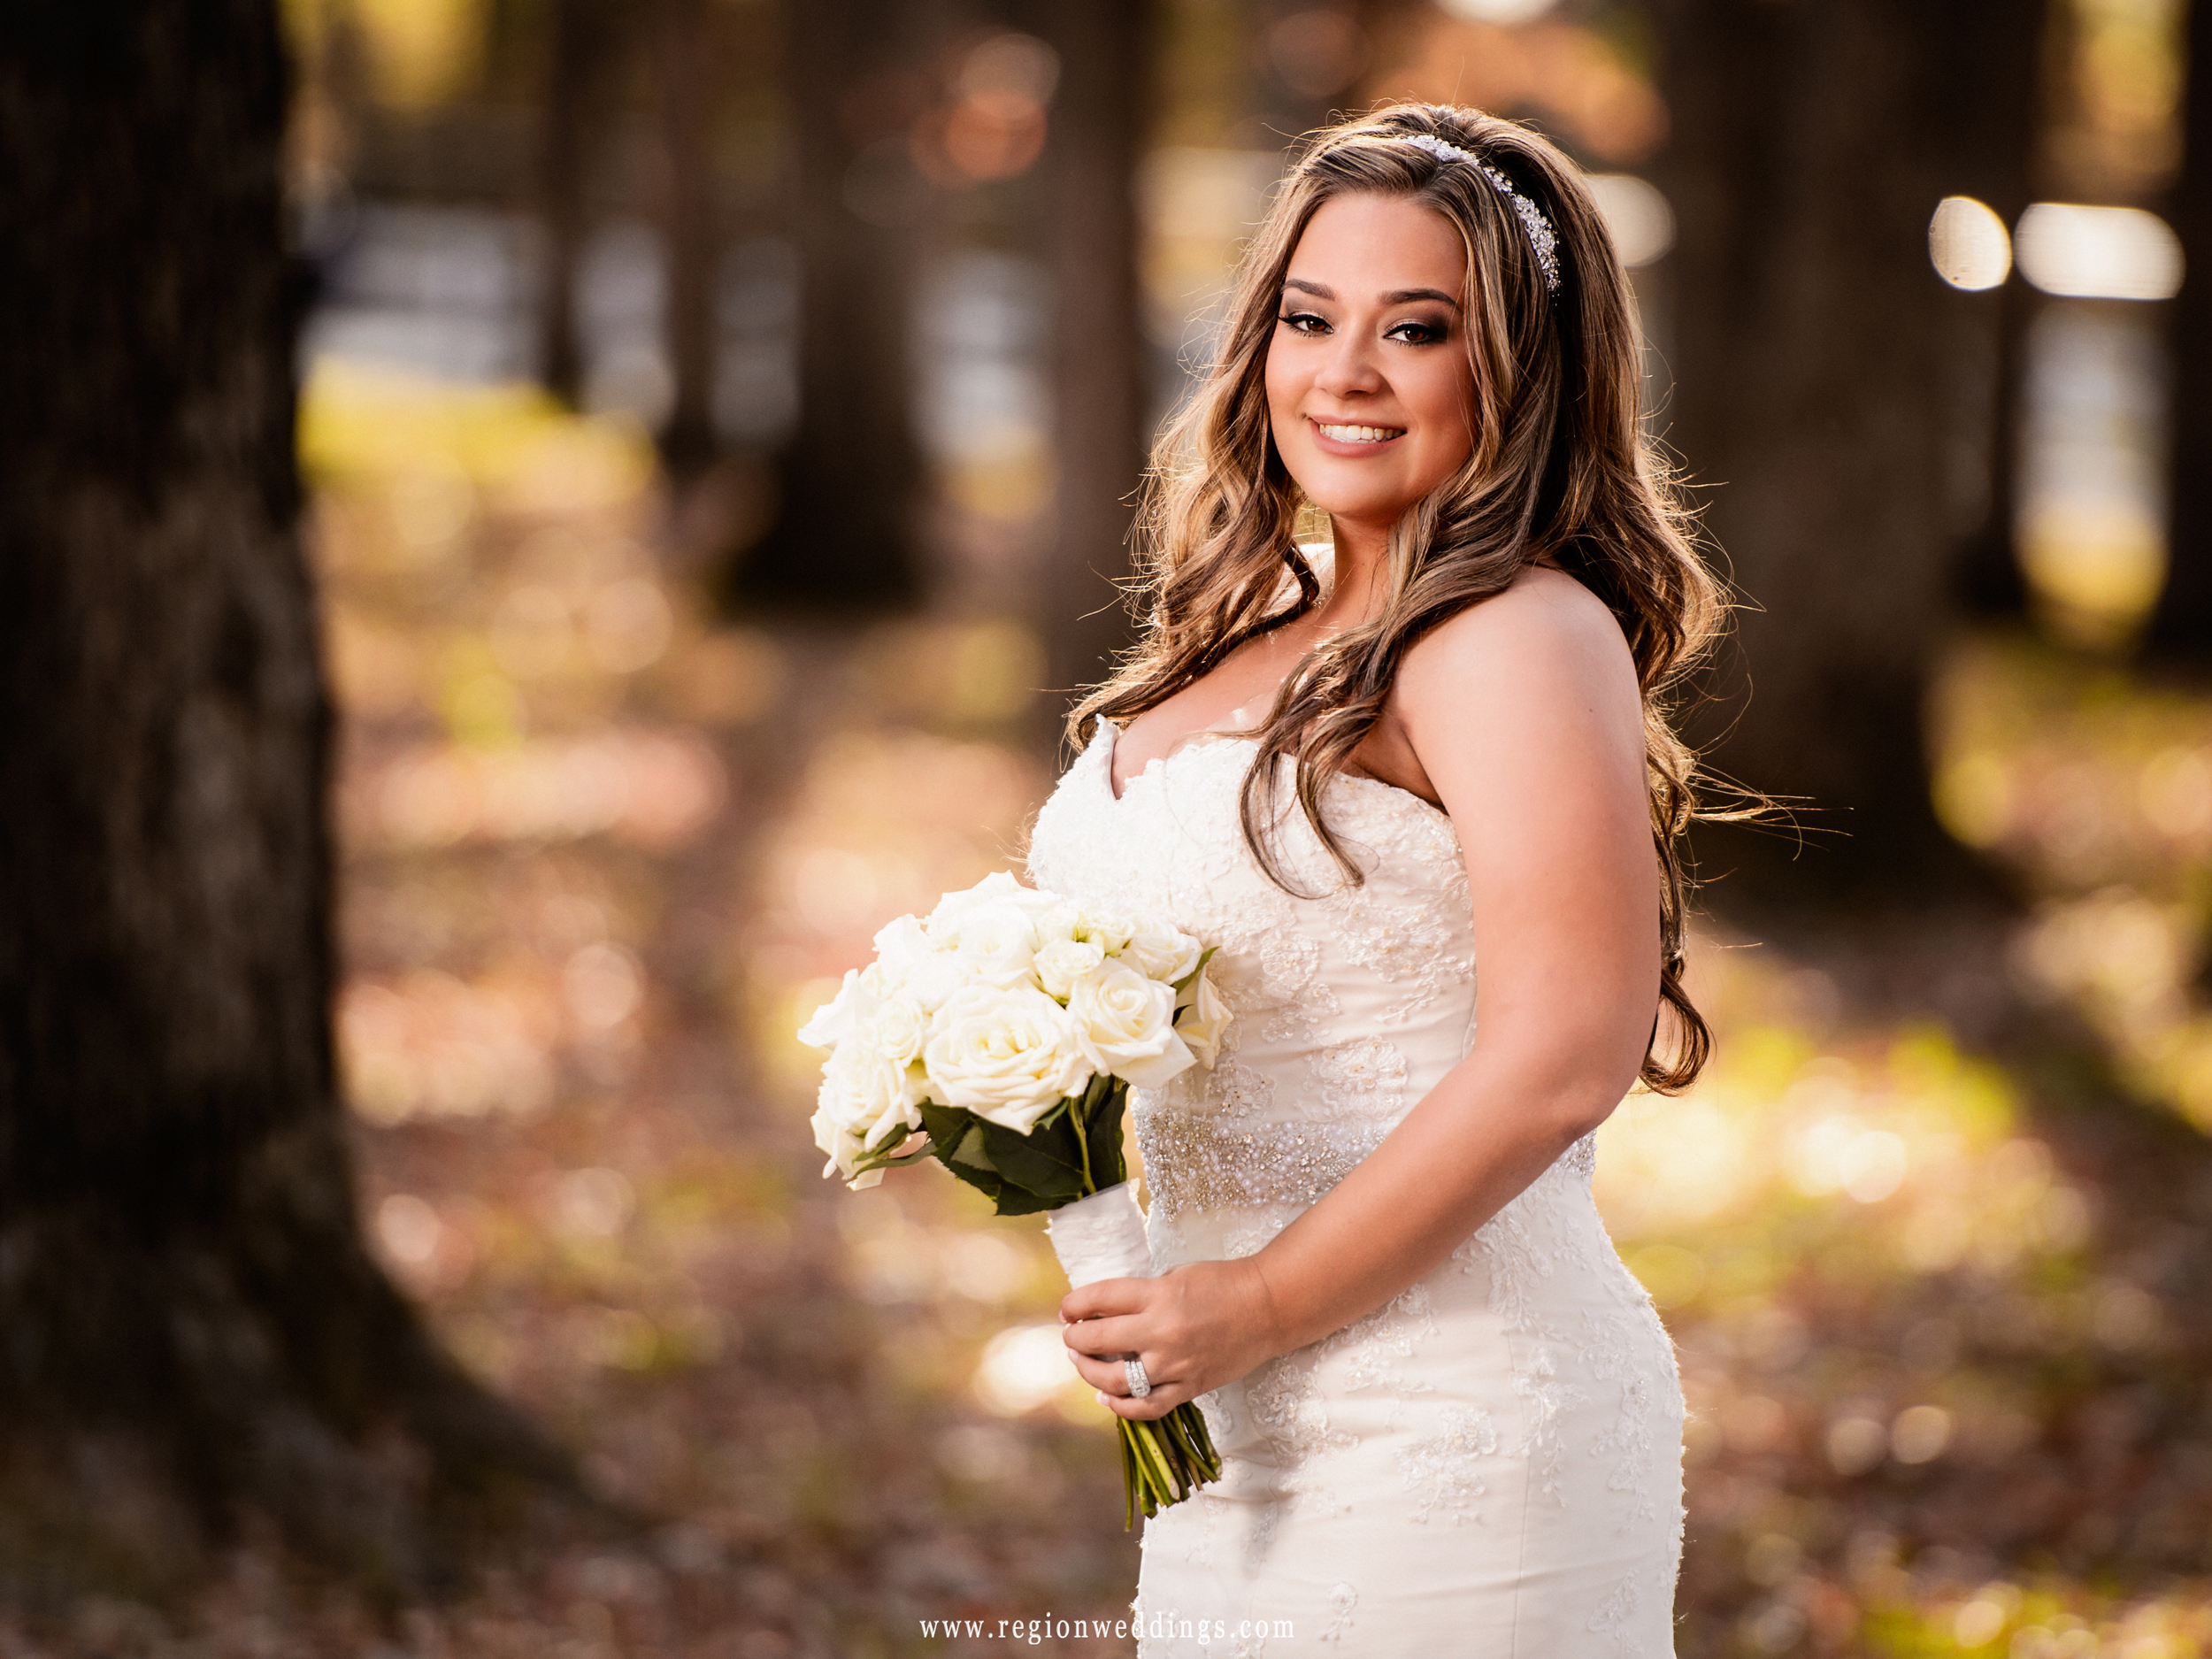 Beautiful bride surrounded by Fall color.